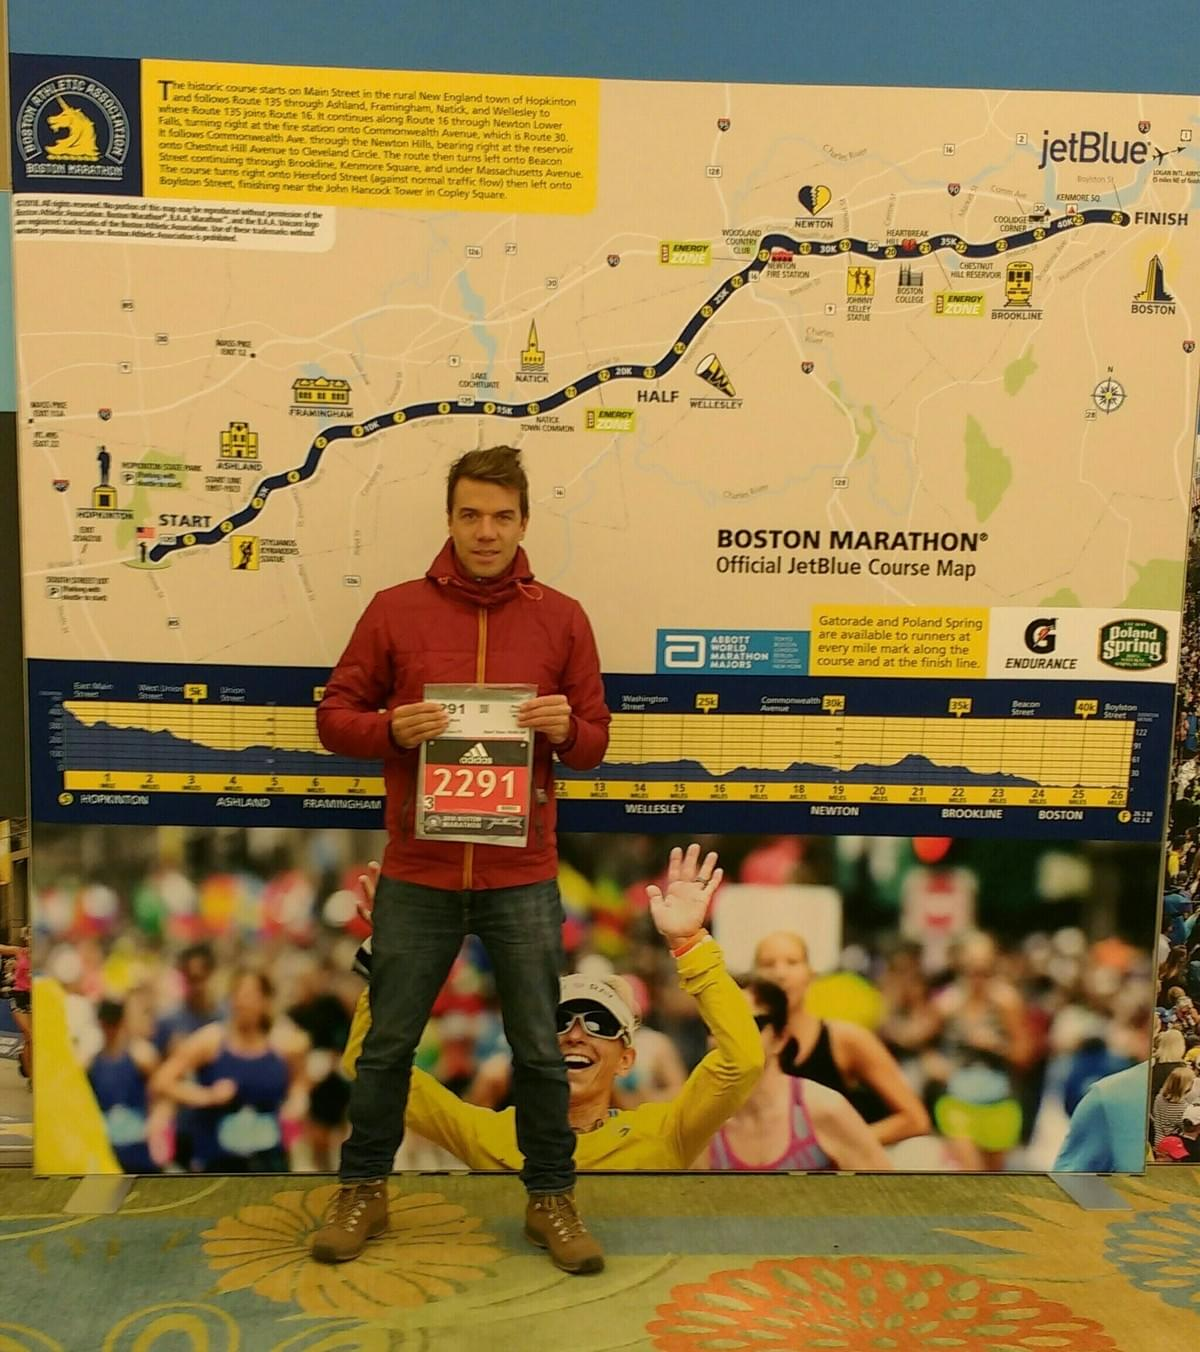 Race number photo in front of 2018 Boston Marathon course map